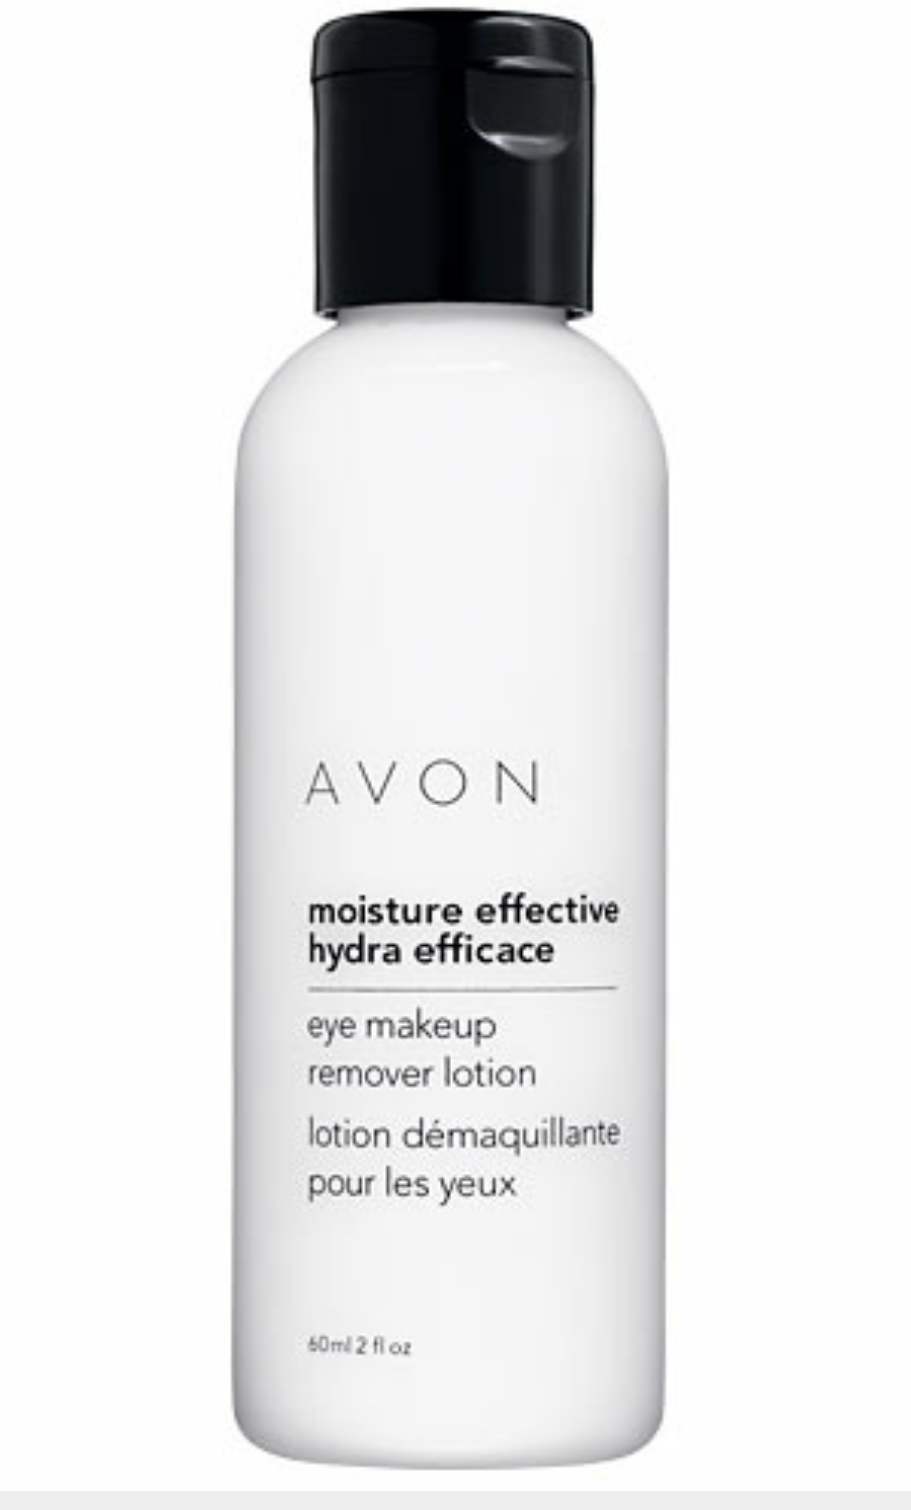 Avon Eye Makeup Remover Lotion Best eye makeup remover